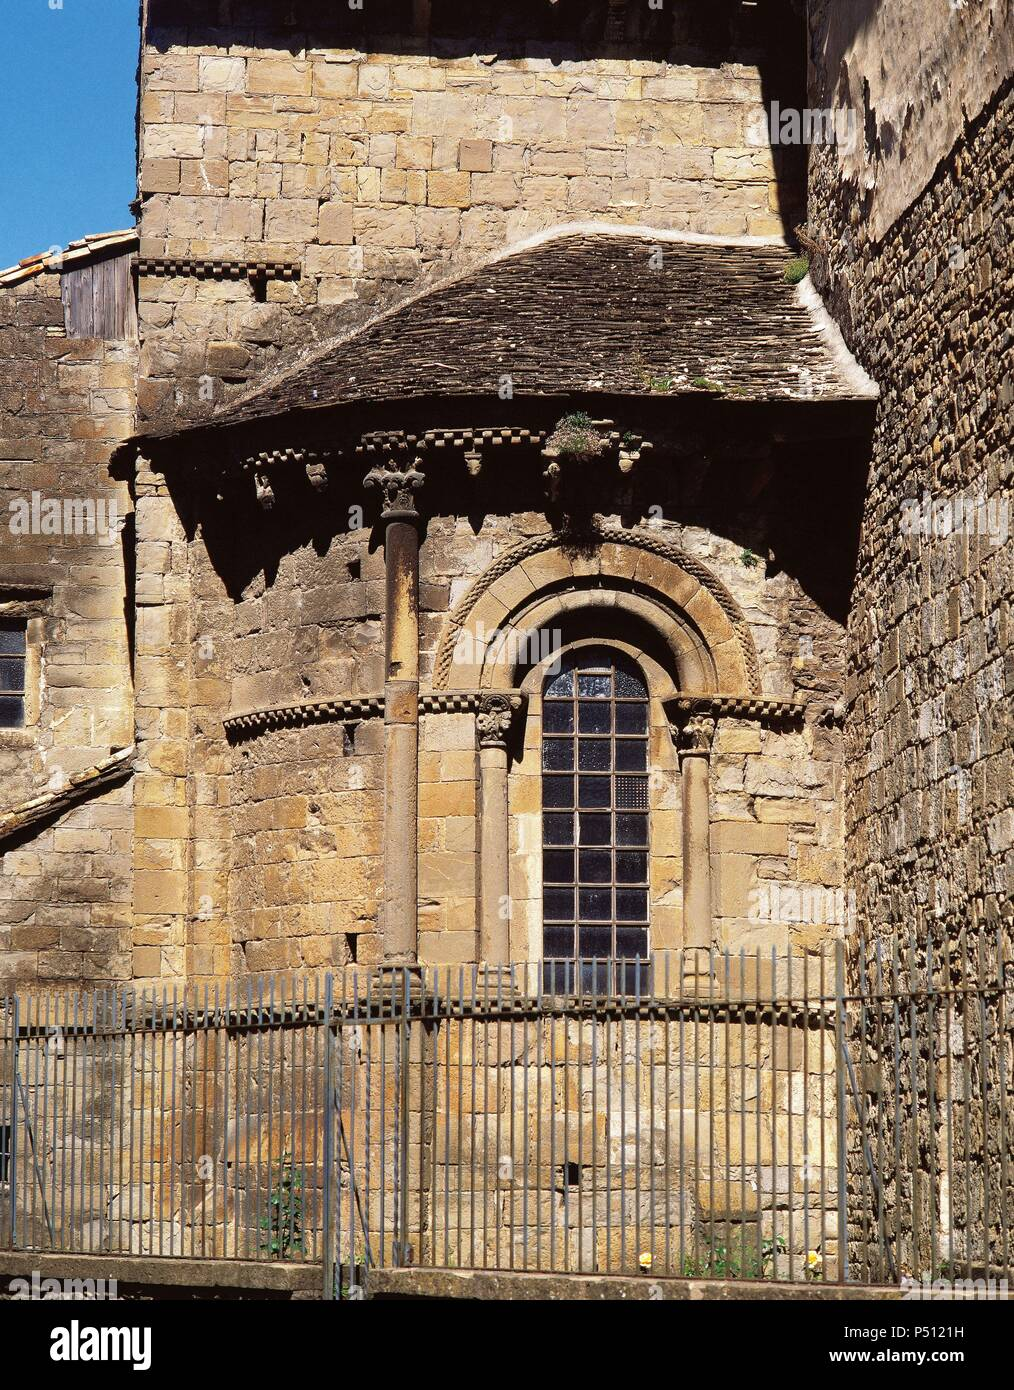 Saint Peter's Cathedral. Romanesque temple built during the kingdom of Ramiro I (1035-1063), king of Aragon. XI century. Outside view. South apse. Jaca. Aragon. Spain. - Stock Image